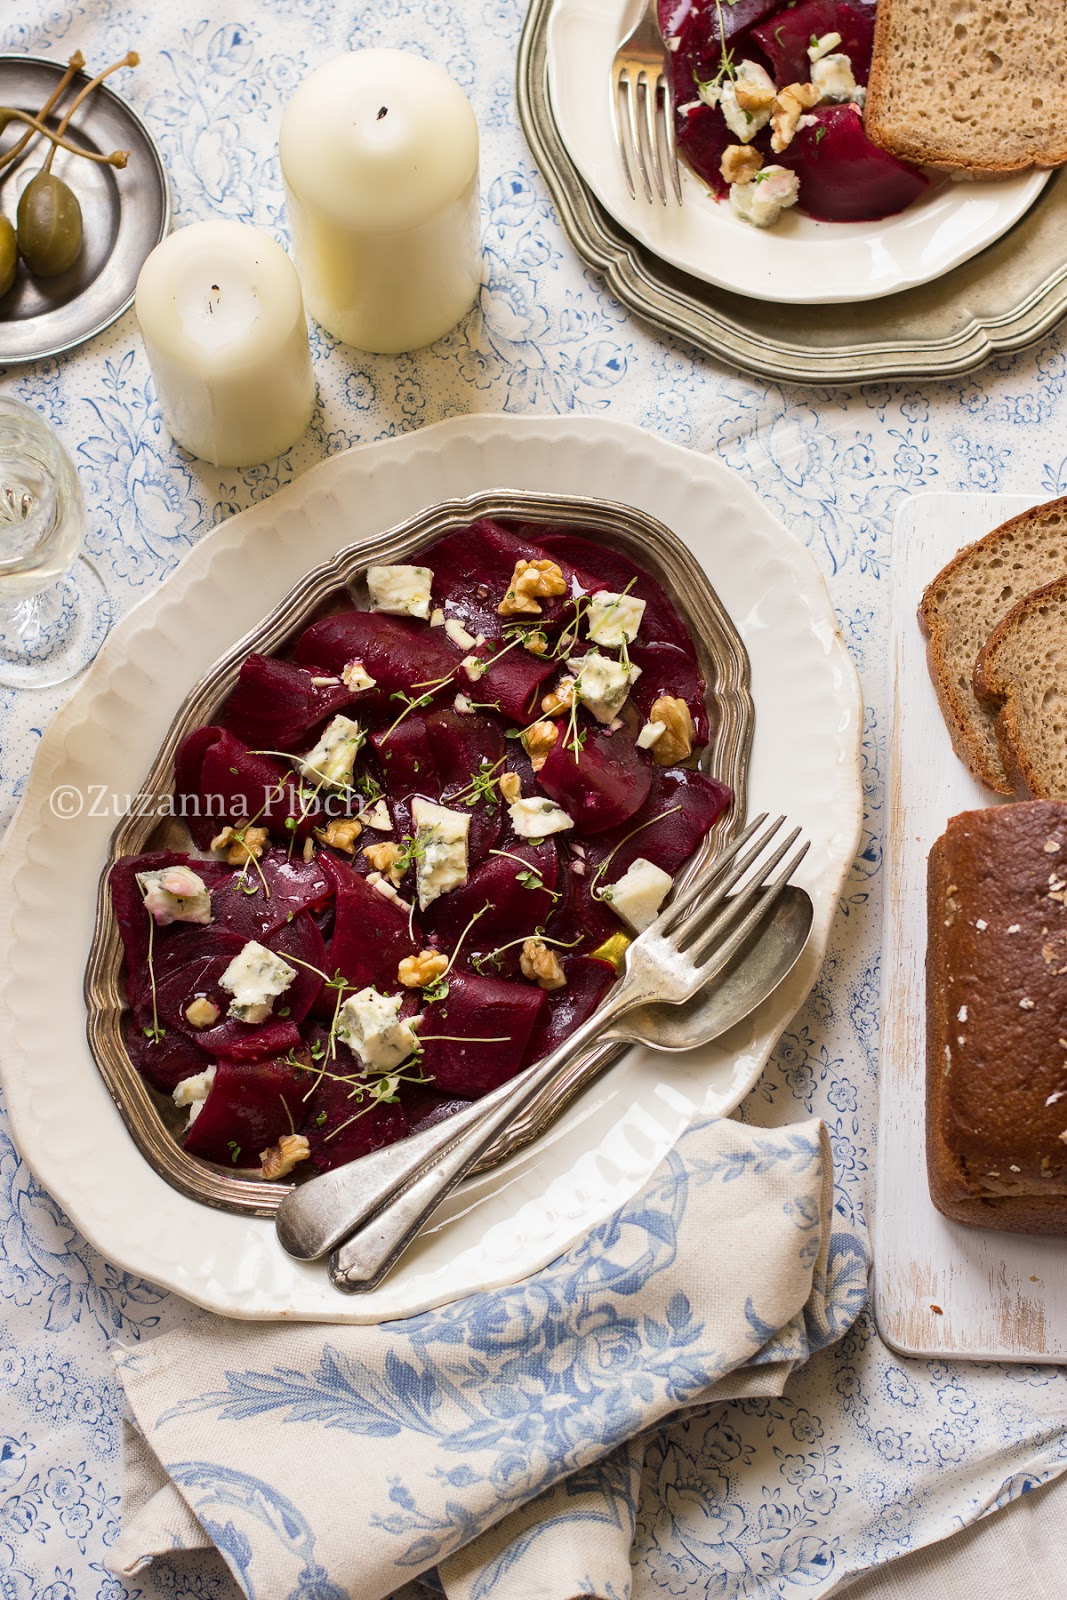 Beetroot salad - Food photography by Zuzanna Ploch, fotografia kulinarna